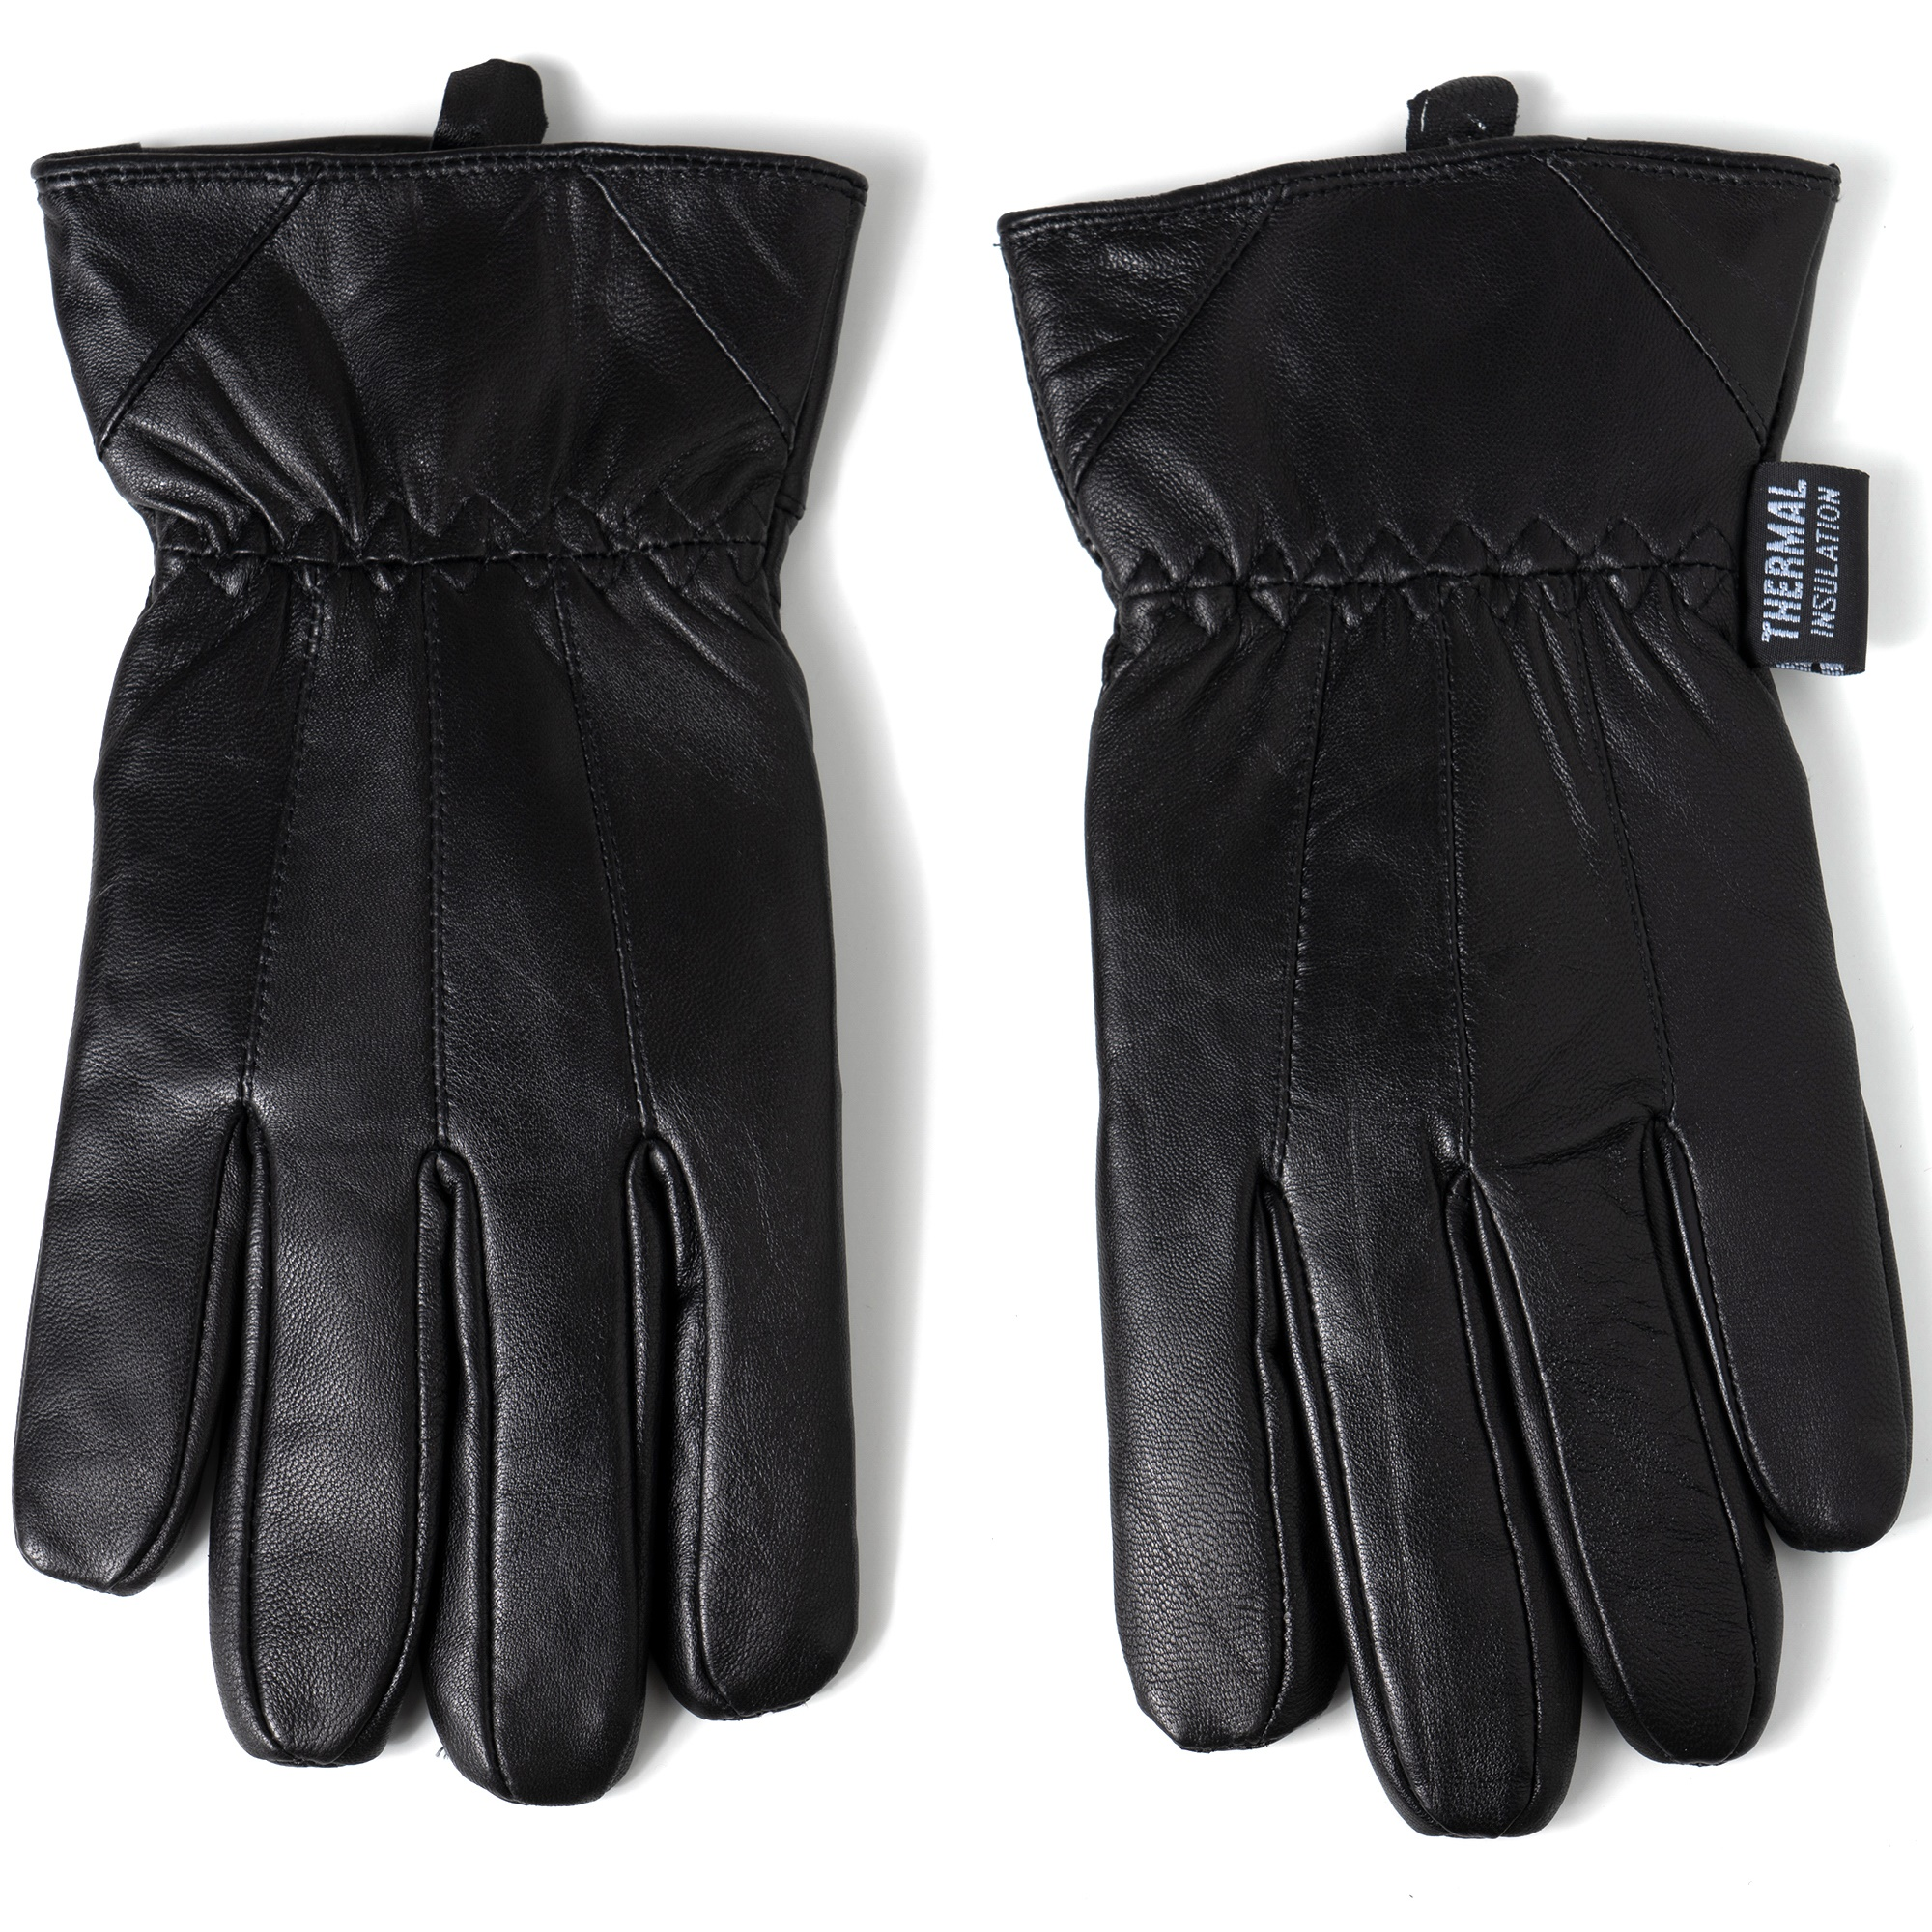 Alpine-Swiss-Mens-Touch-Screen-Gloves-Leather-Thermal-Lined-Phone-Texting-Gloves thumbnail 16